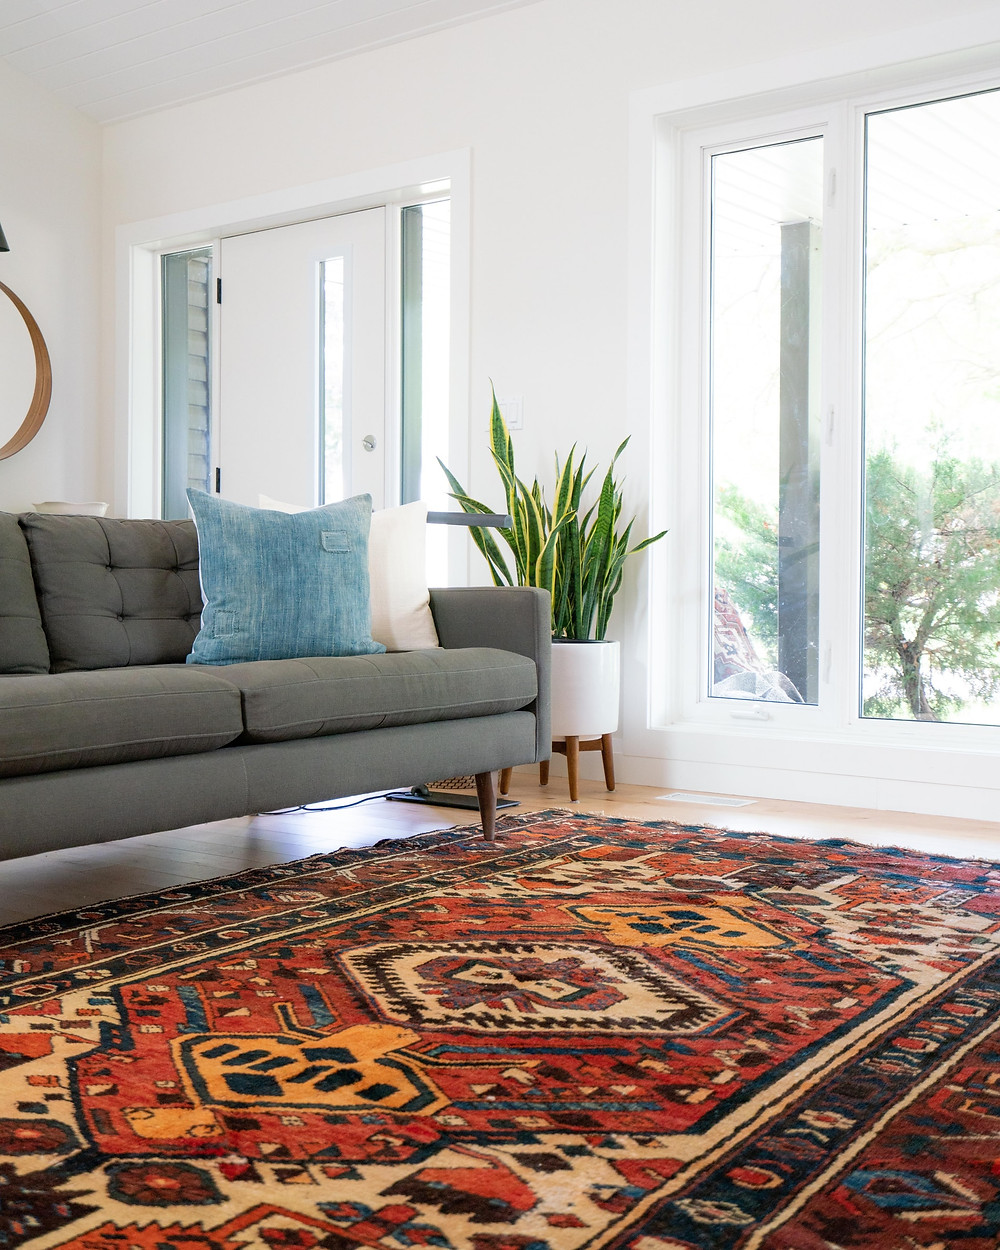 minimalist and vernacular white living room with plants and traditional area rug